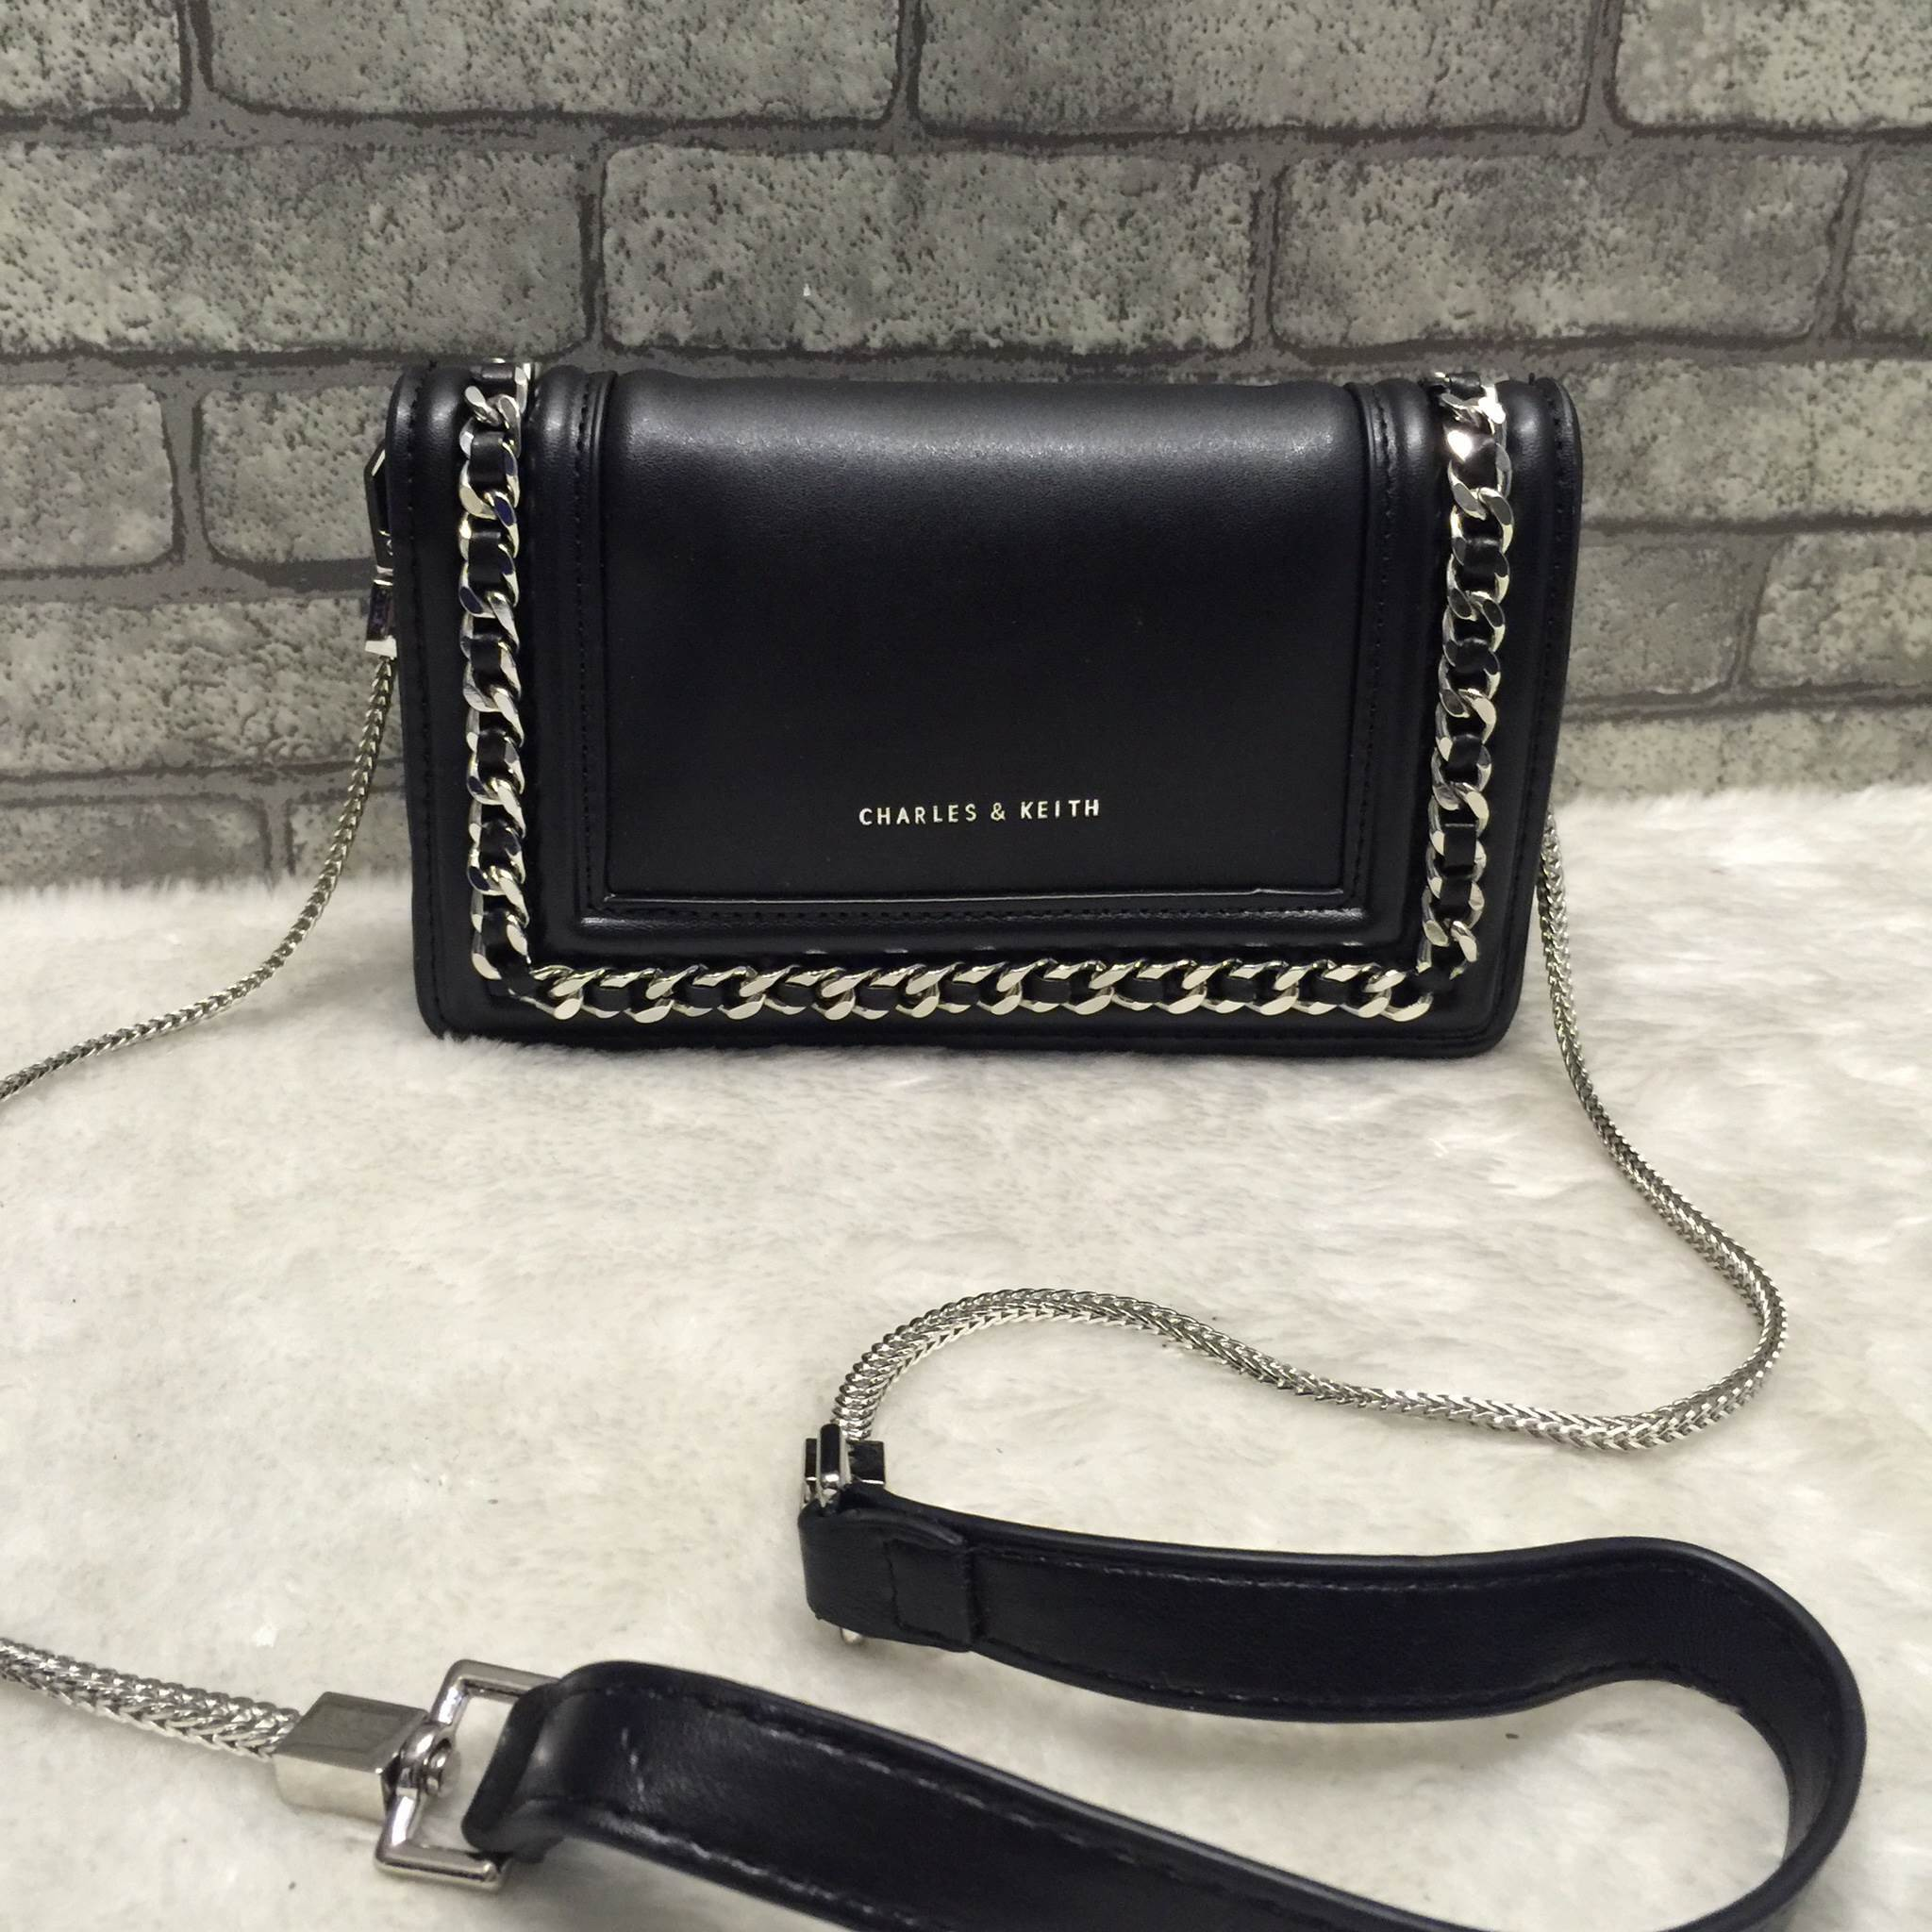 CHARLES & KEITH CHAIN DETAIL CLUTCH